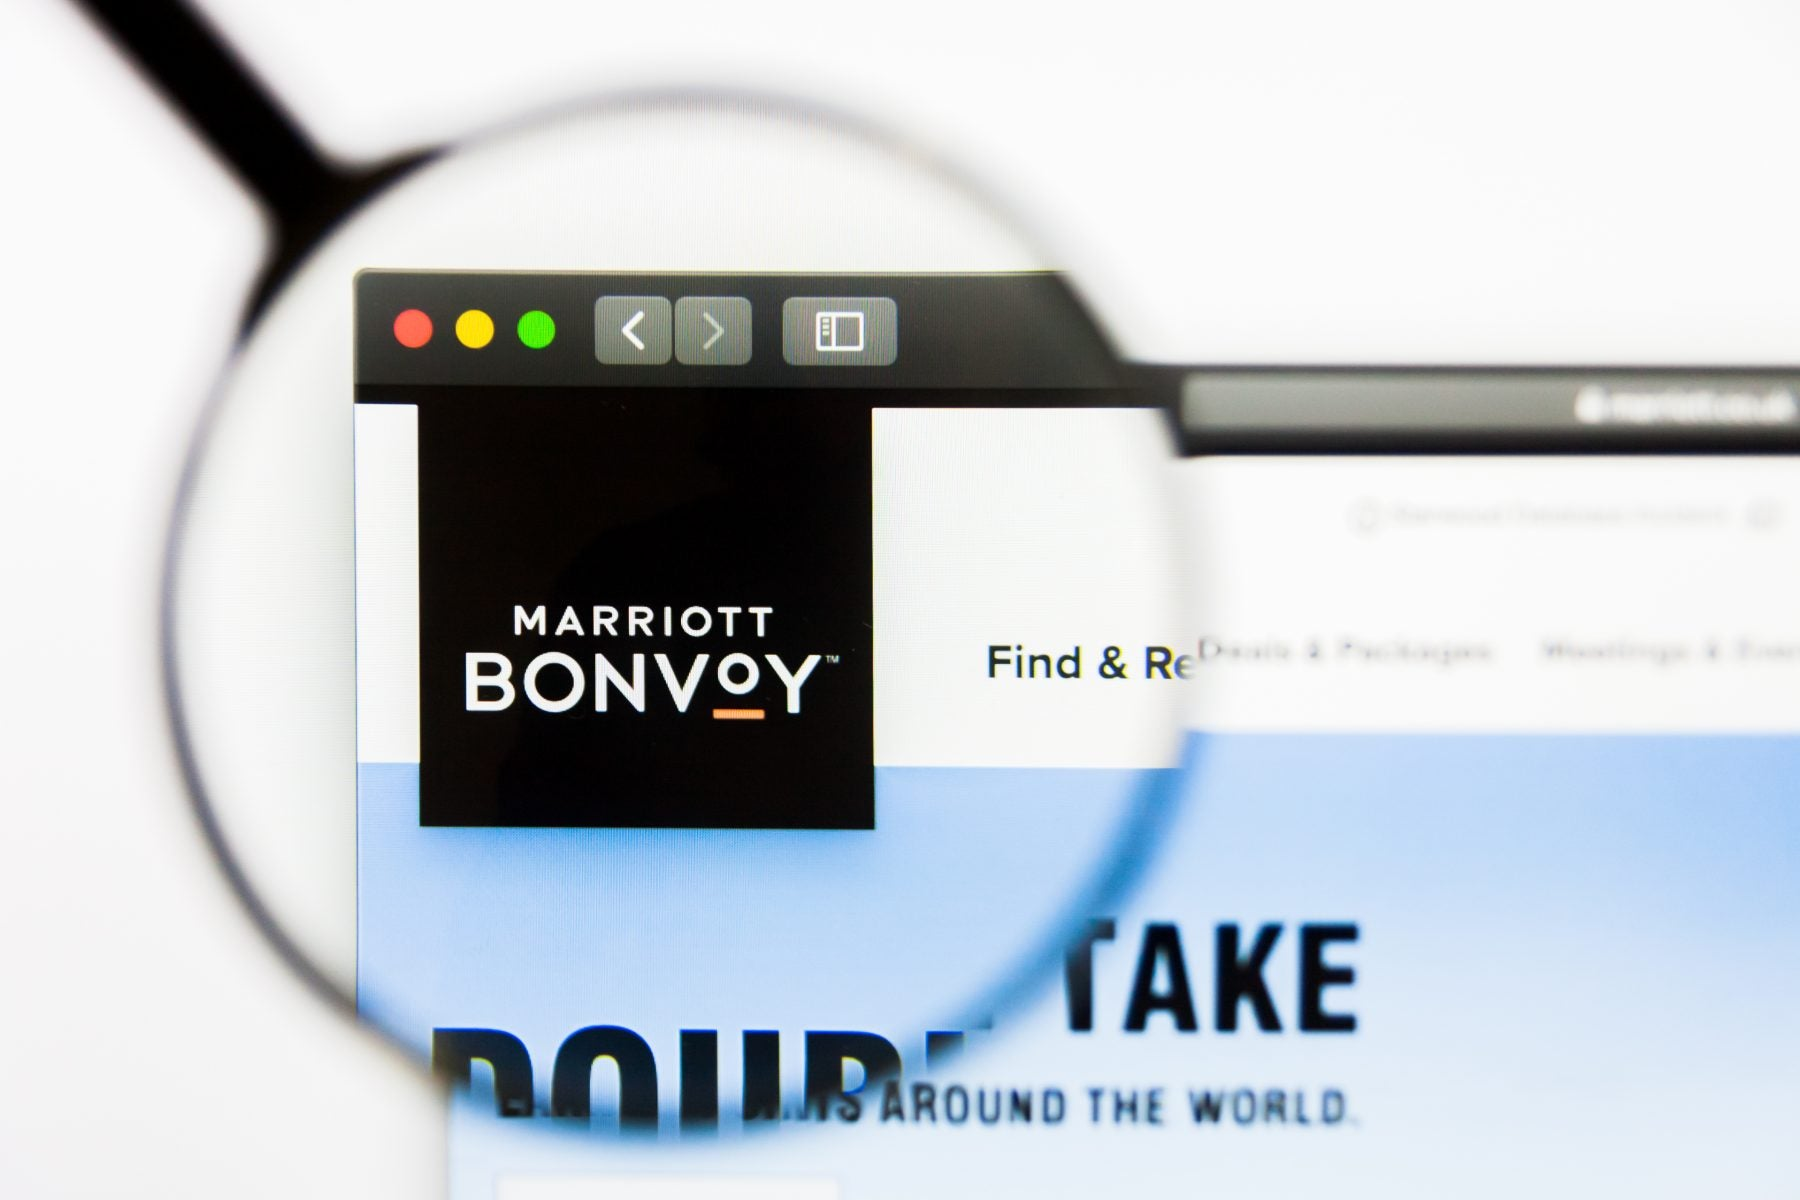 Test your Marriott Bonvoy knowledge: 13 secret features of Marriott's rewards program that you might not know